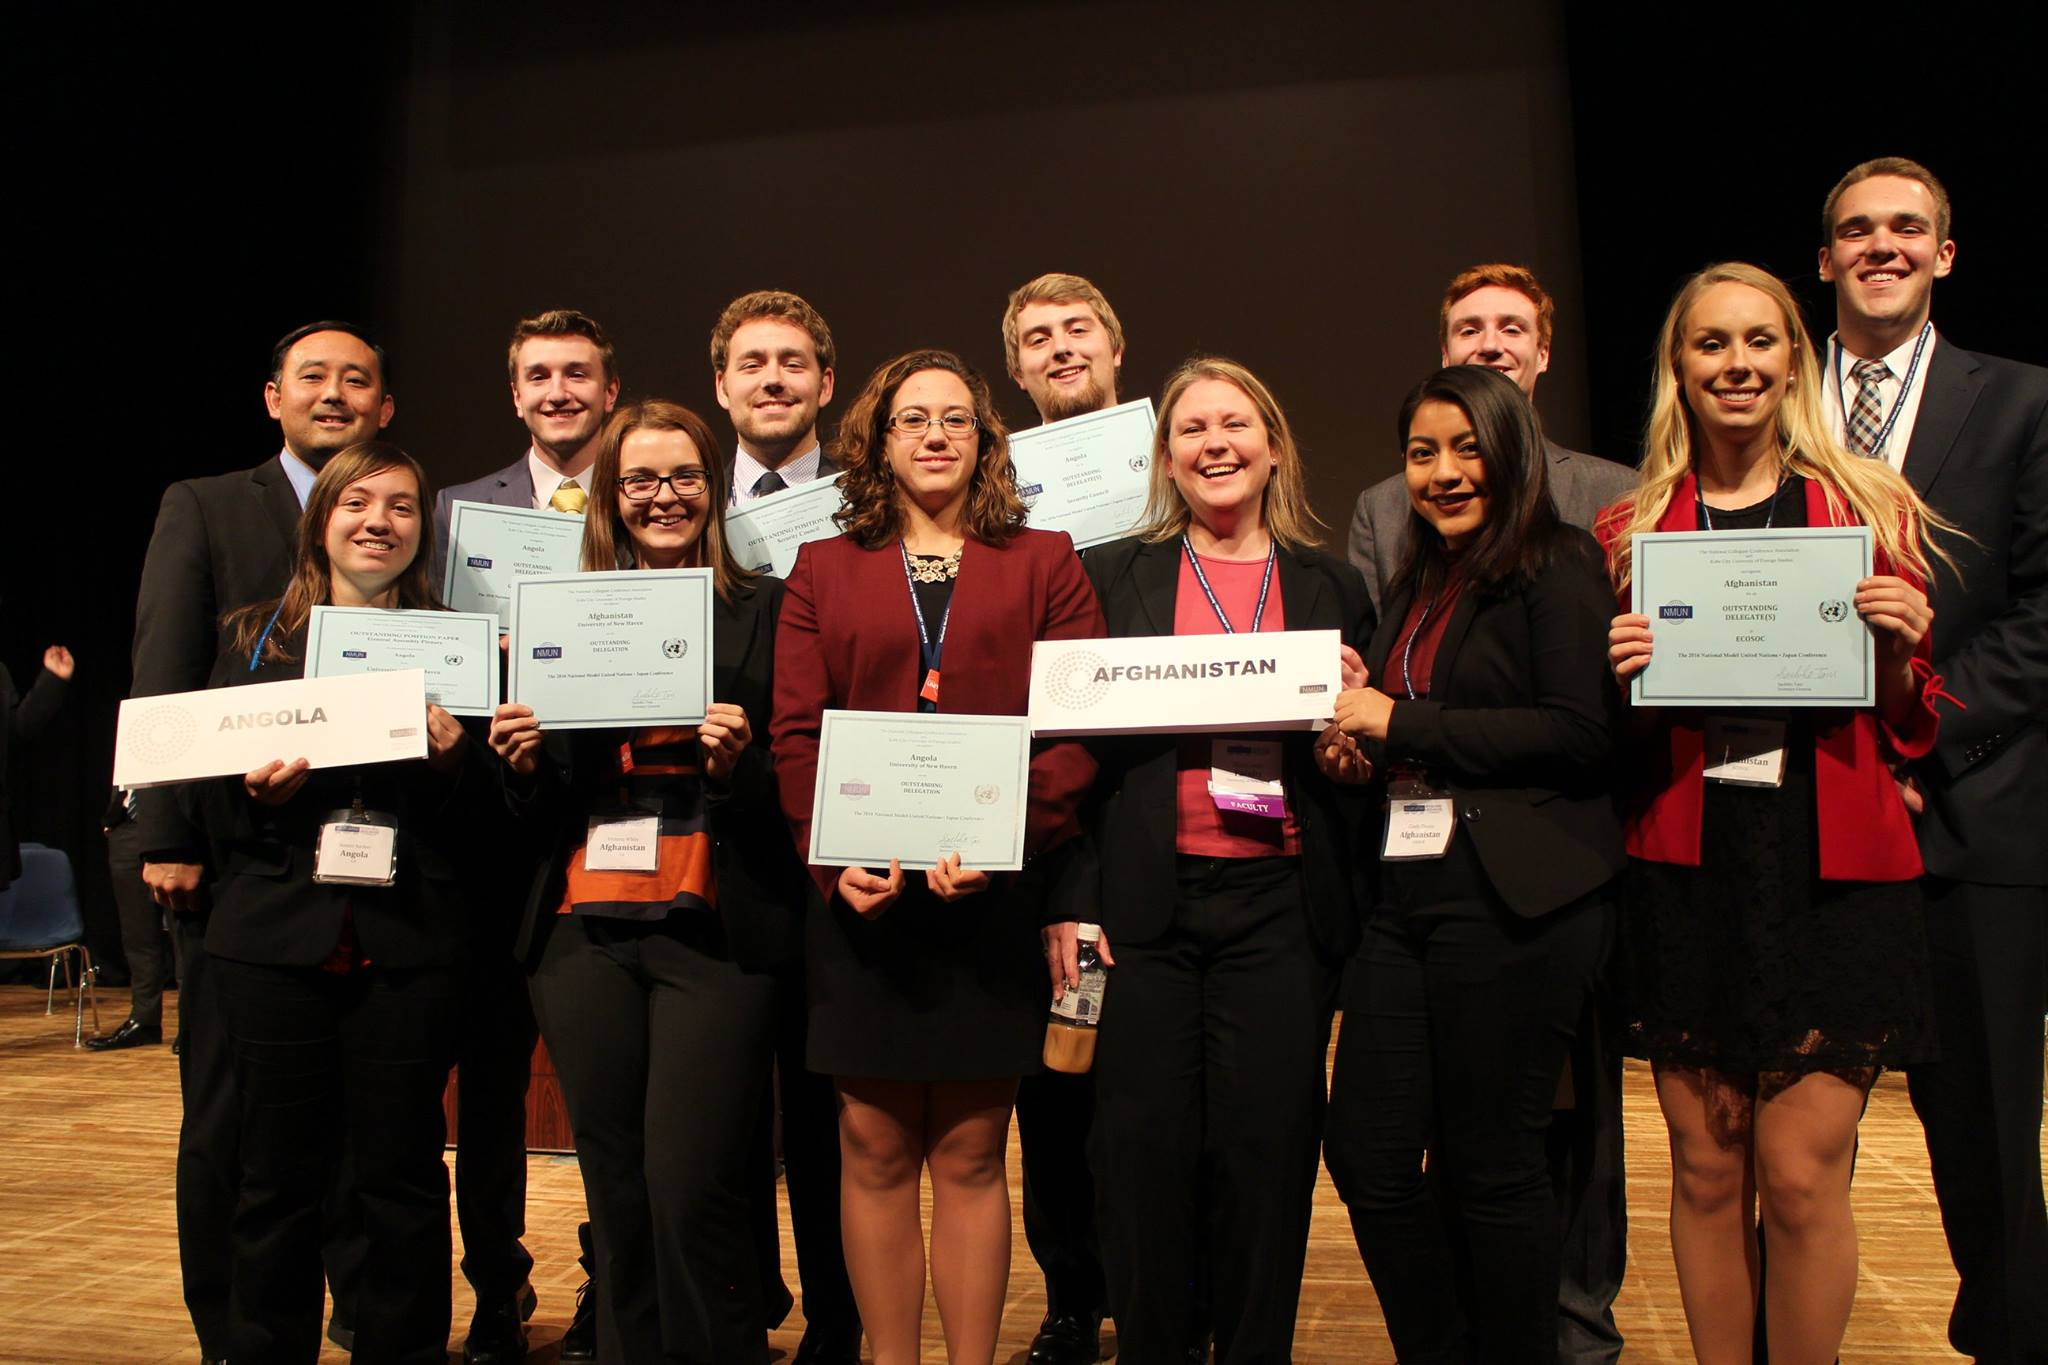 Chelsea Was That A Man: The Charger Bulletin : UNH Model United Nations Wins